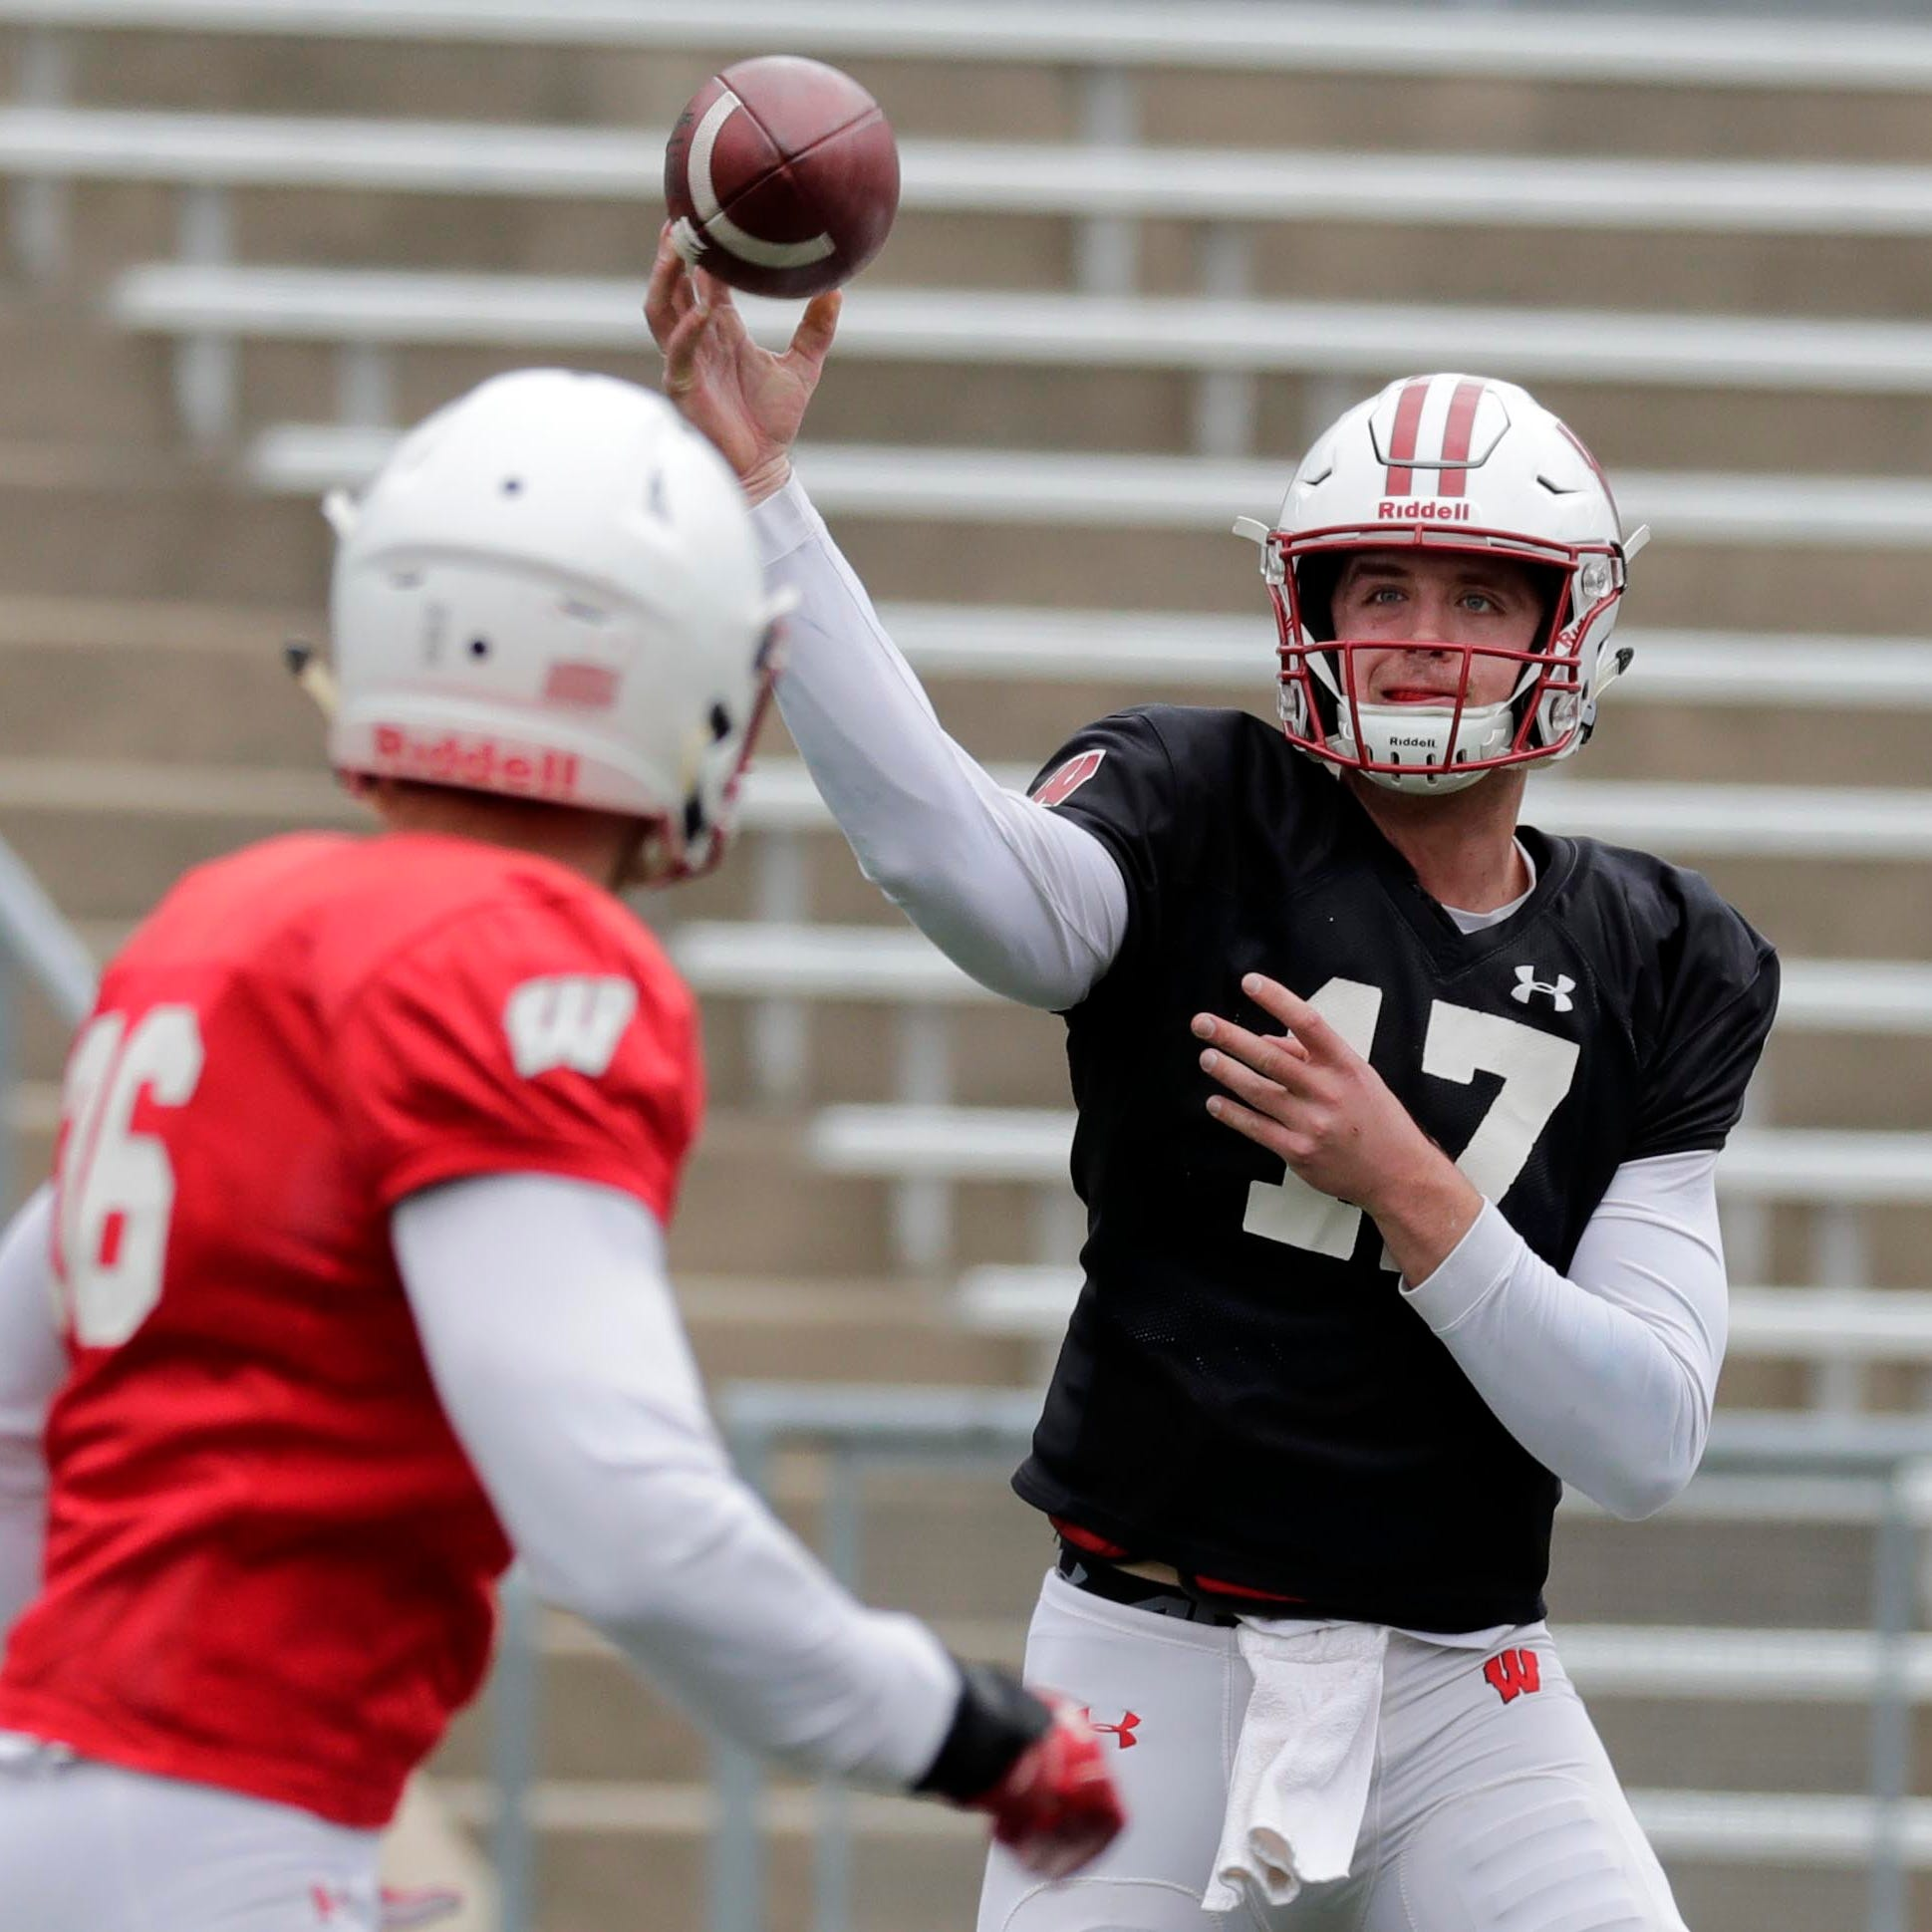 Badgers appear to have four quarterbacks capable of contributing if needed